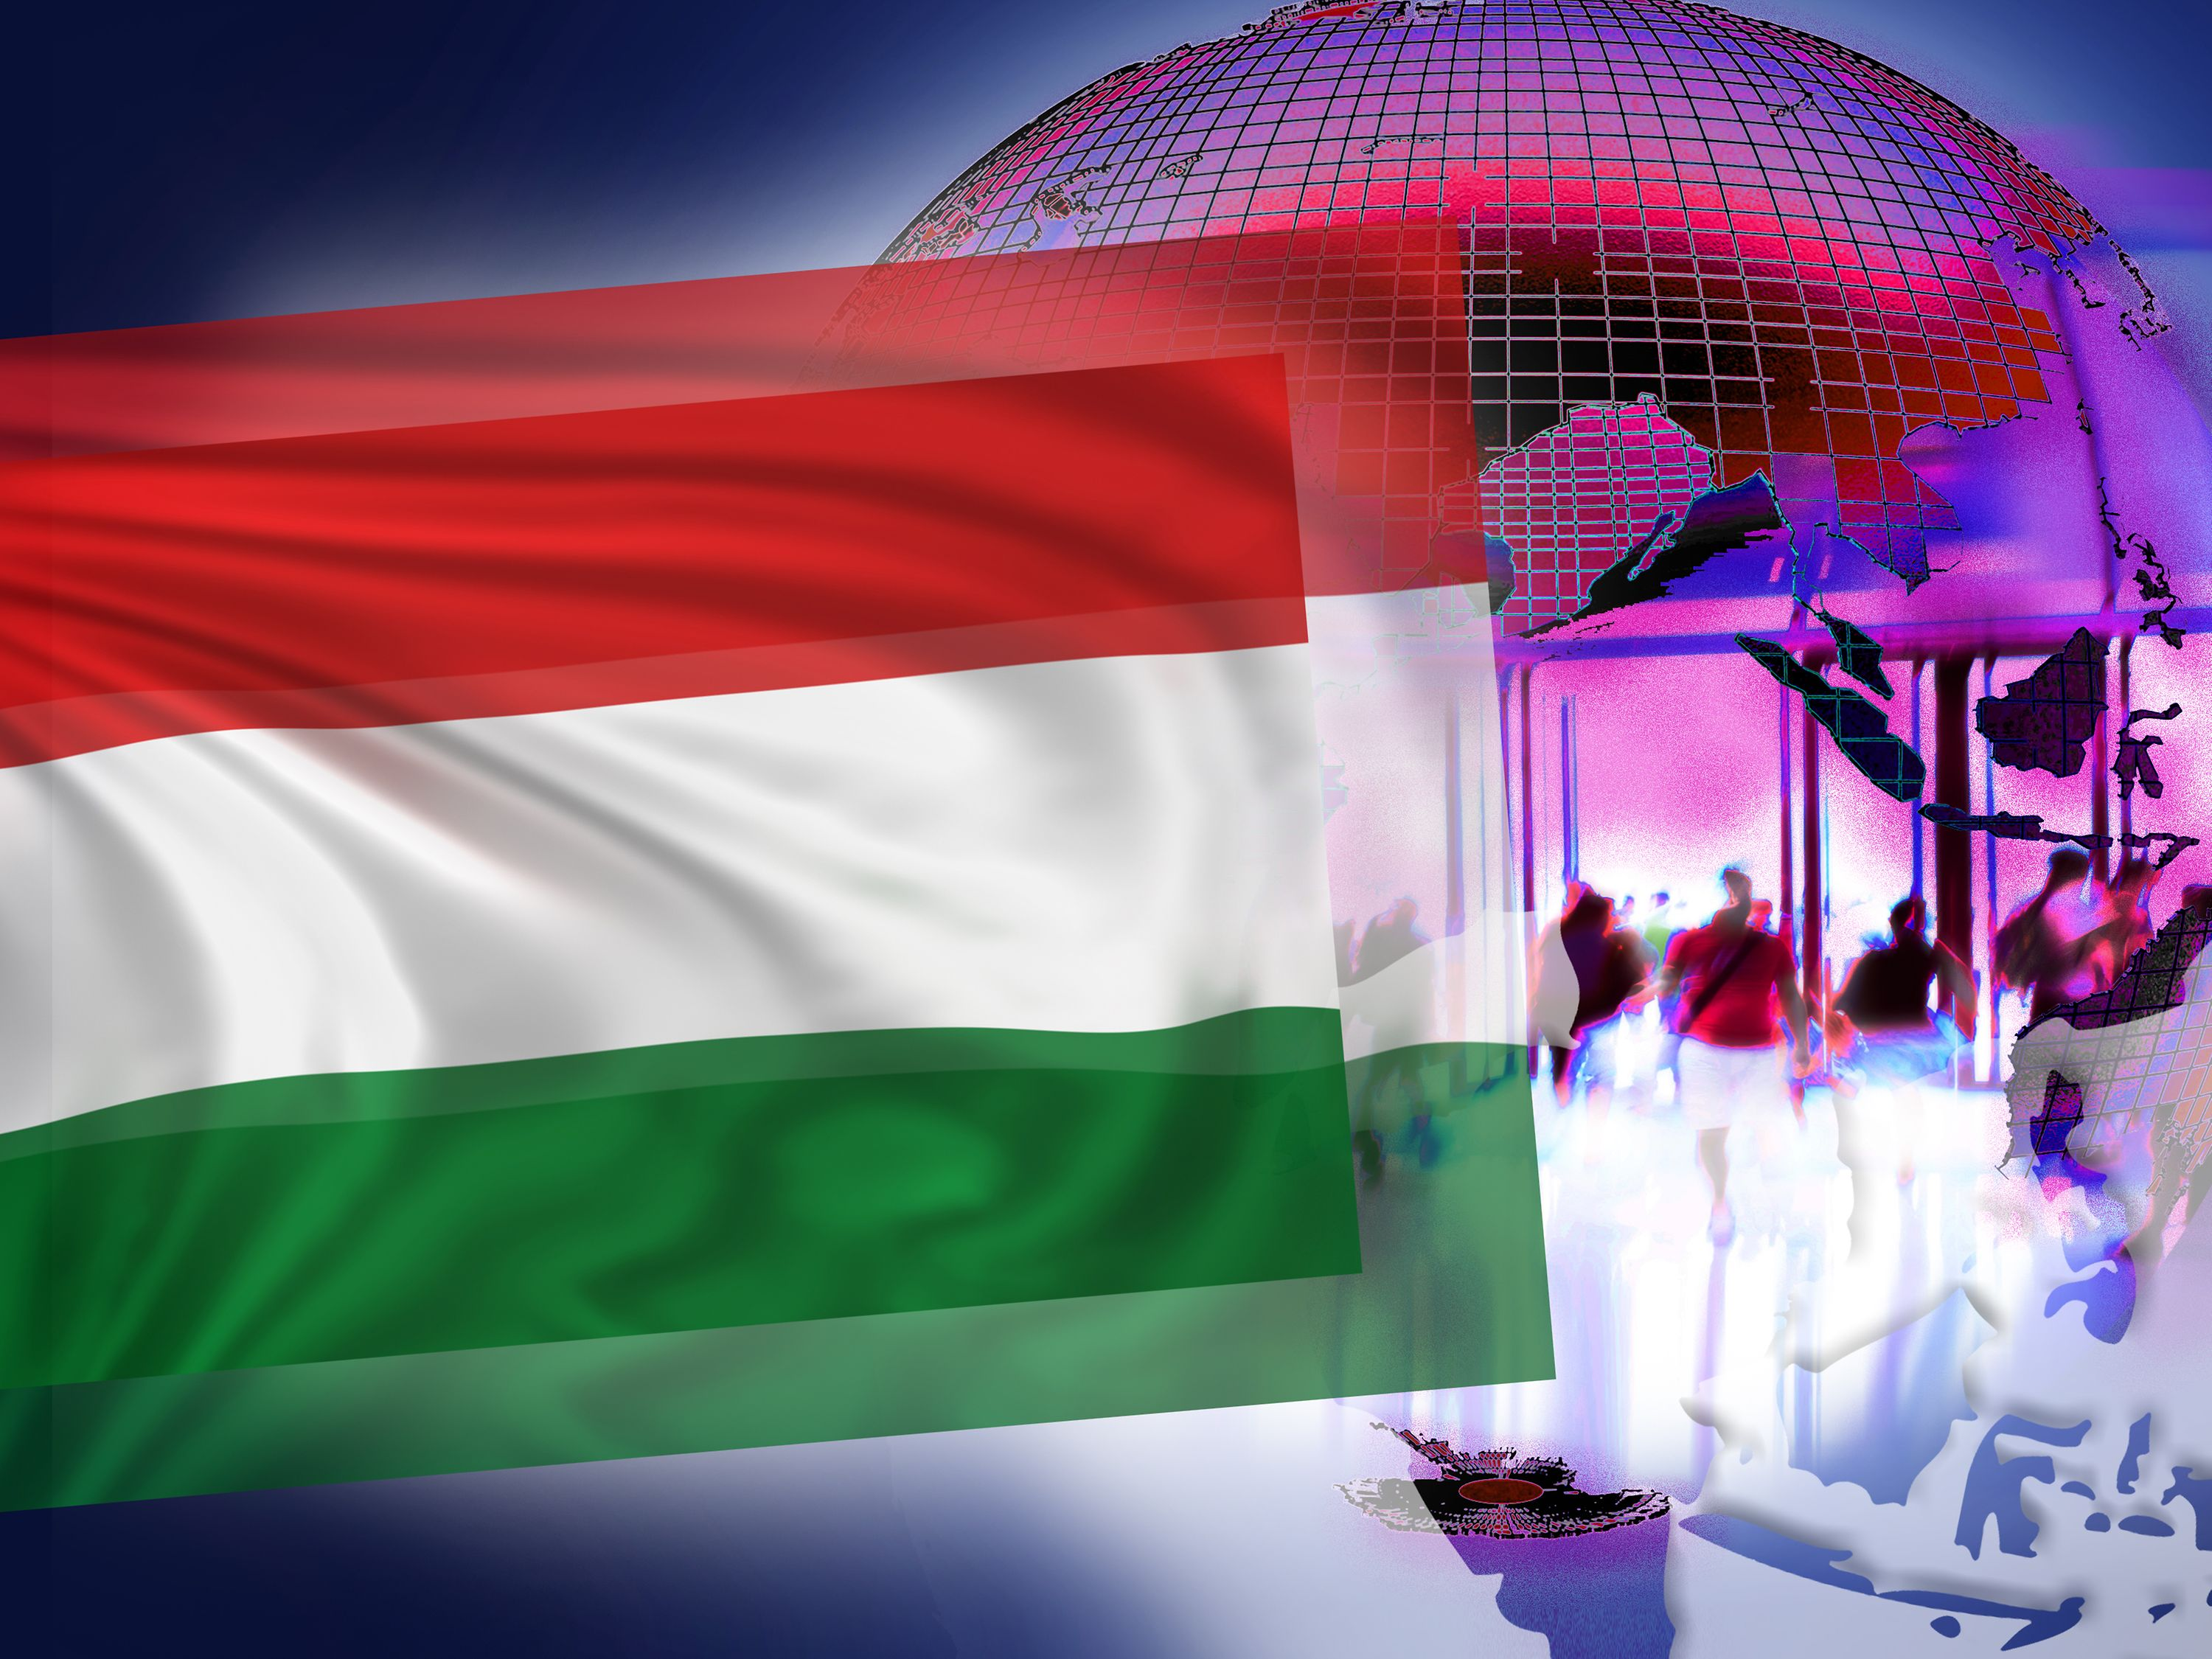 Illustration for NatCo in Hungary with country flag.